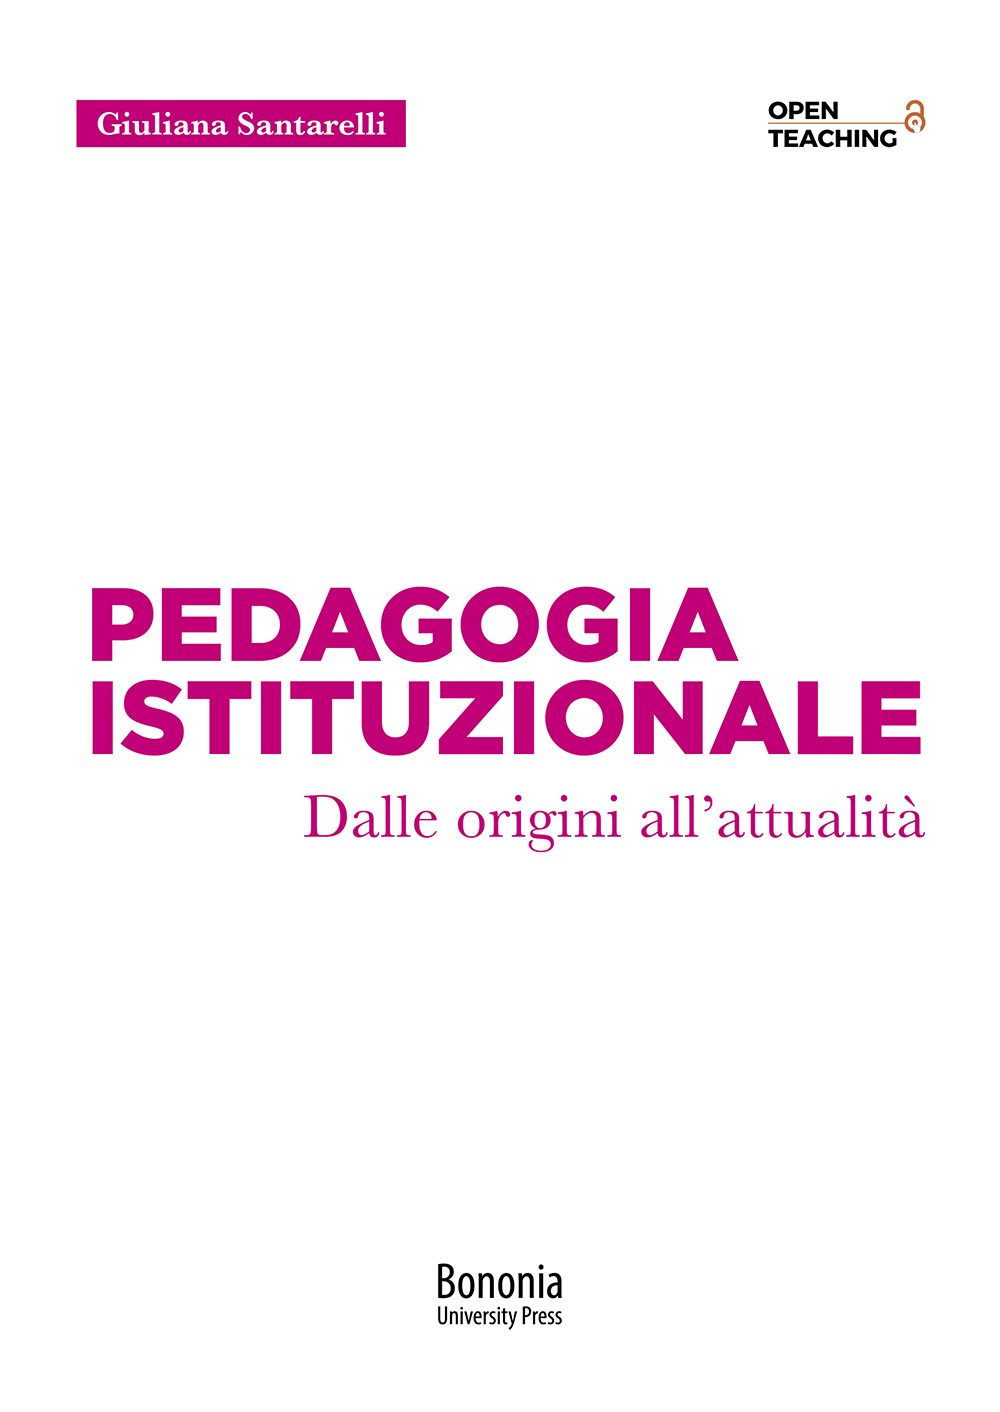 Pedagogia Istituzionale - Bononia University Press